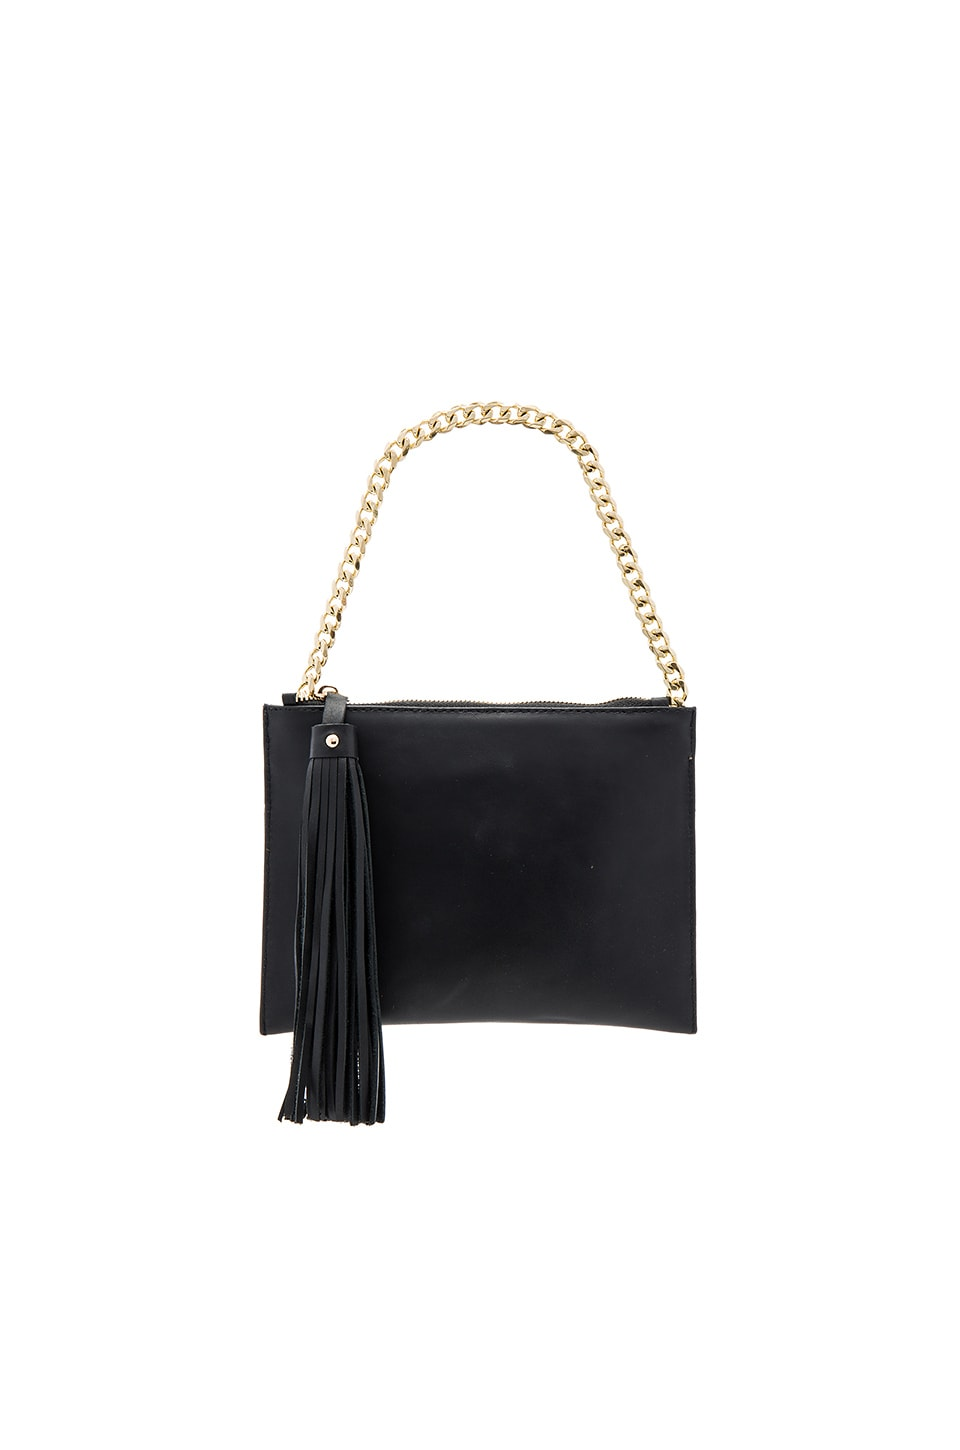 Sancia Mia Chain Clutch in Black